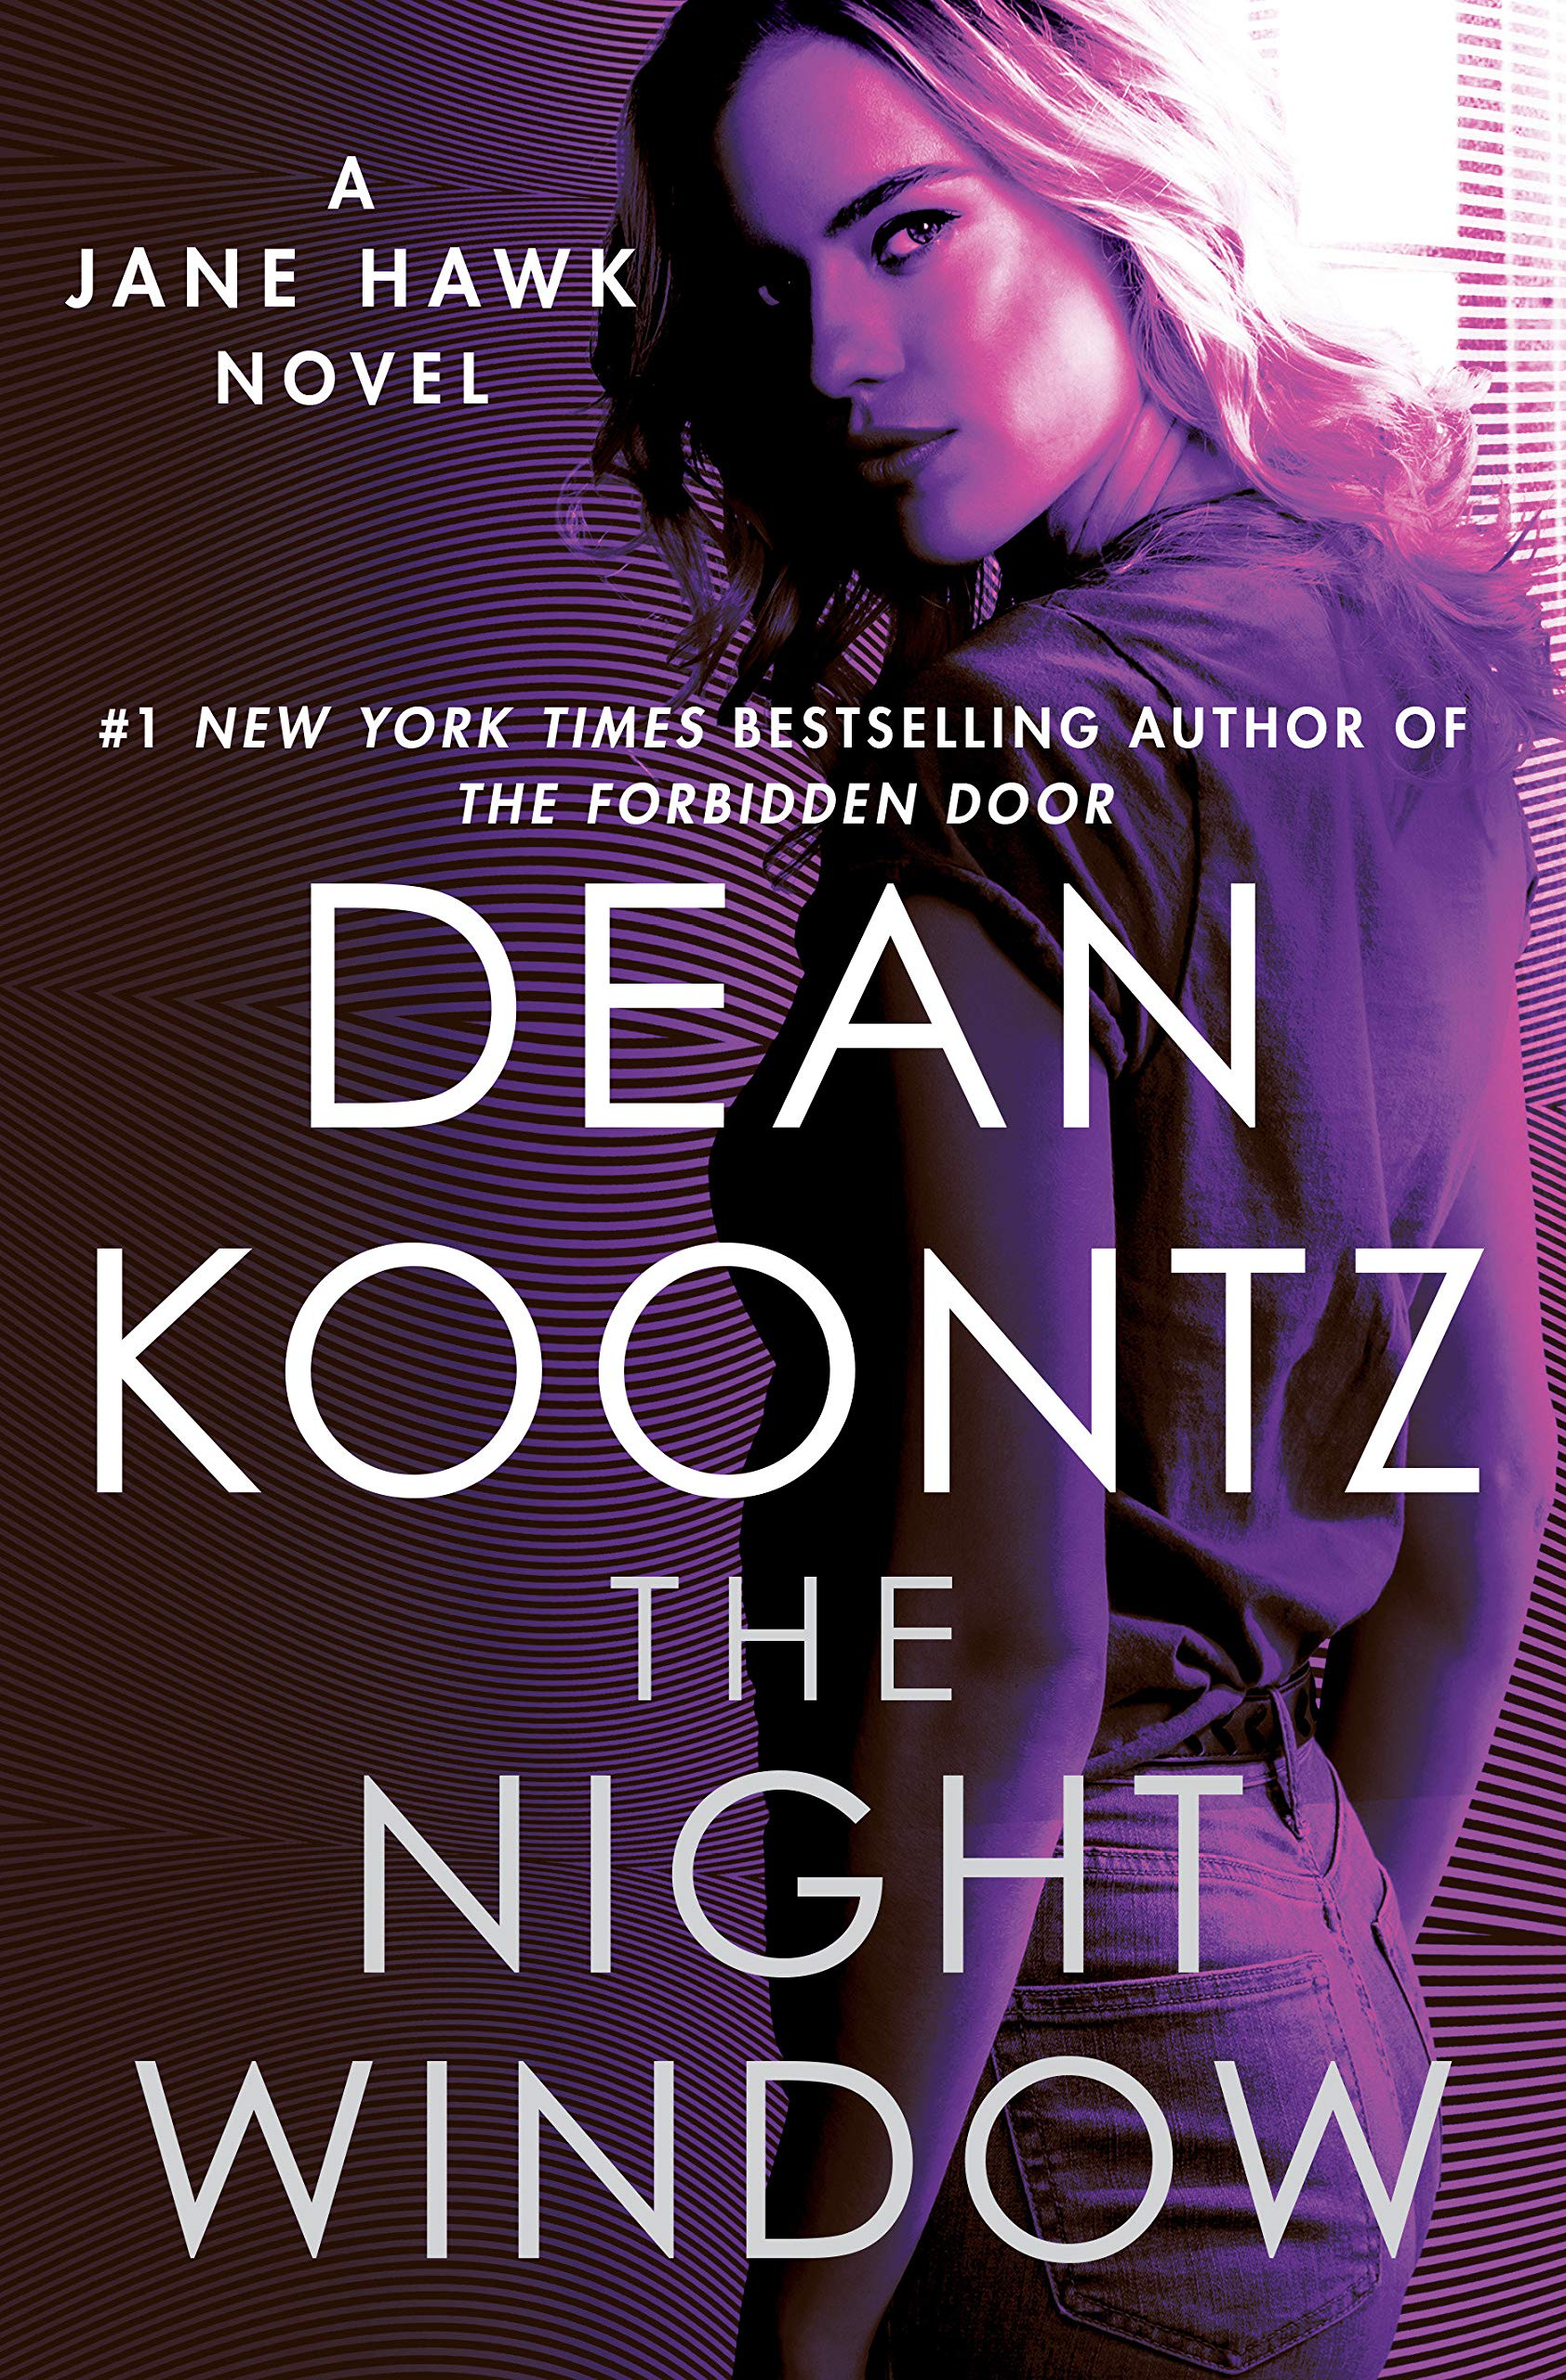 Dean Koontz The Night Window (Book #5 Jane Hawk series)